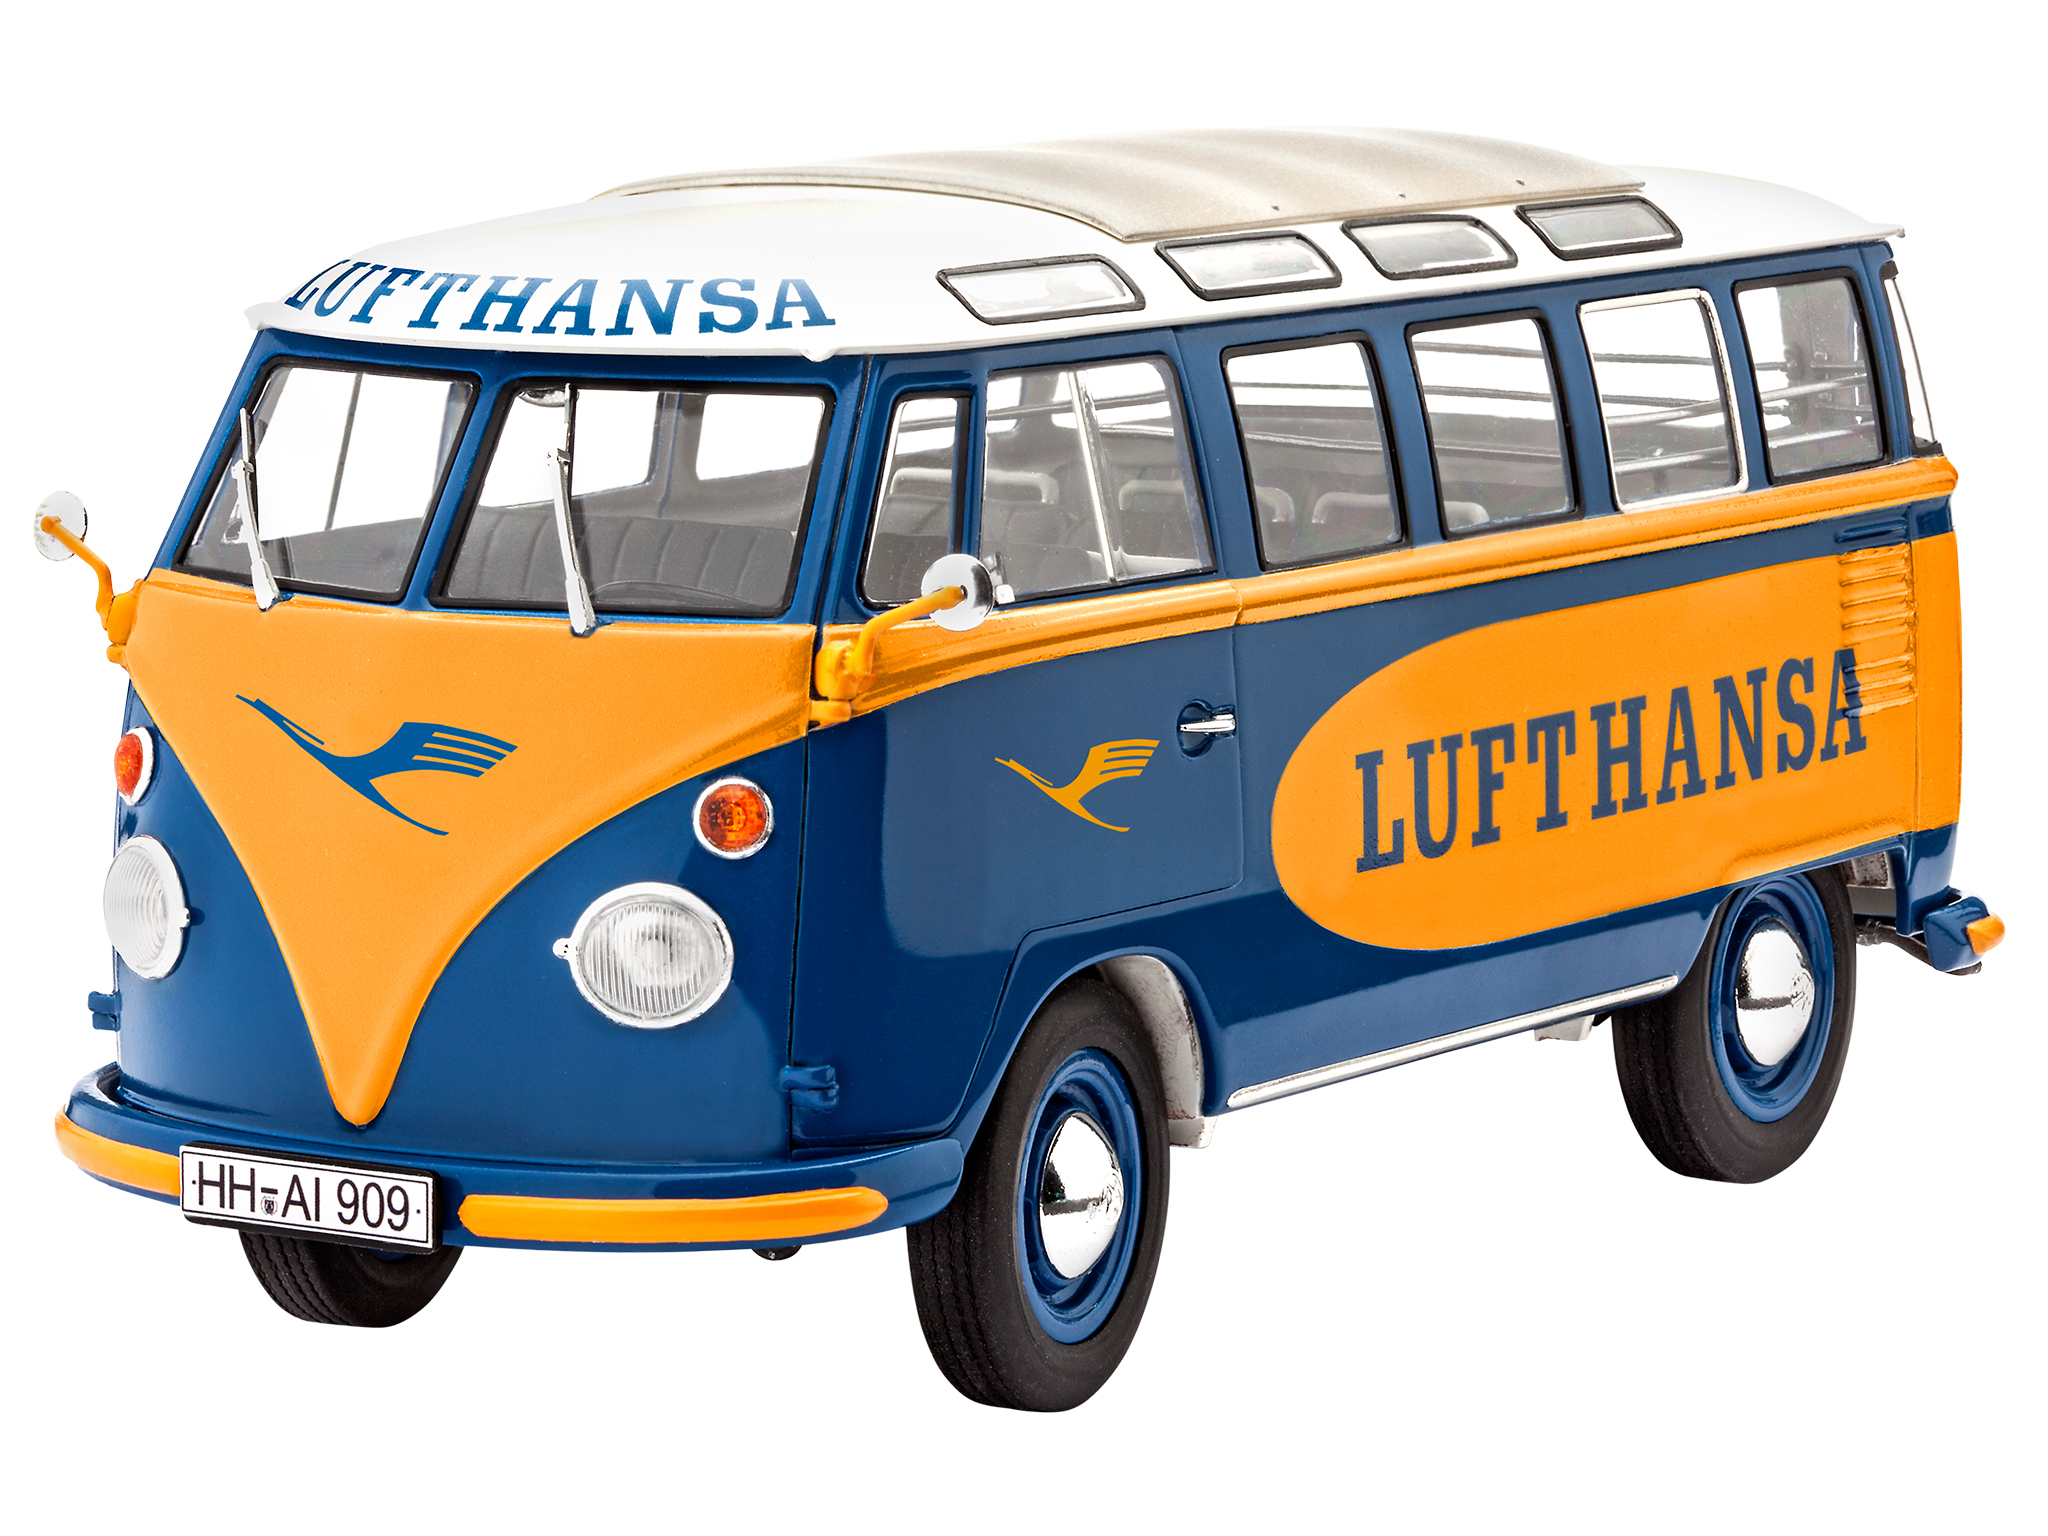 rc for sale with Vw T1 Samba Bus Lufthansa on Flagge Frankreich furthermore Opel Rc Modelle Racers Paradise furthermore Amespercherons besides Spst Toggle Sw also Rahmenlos Blechschild Kloordnung.